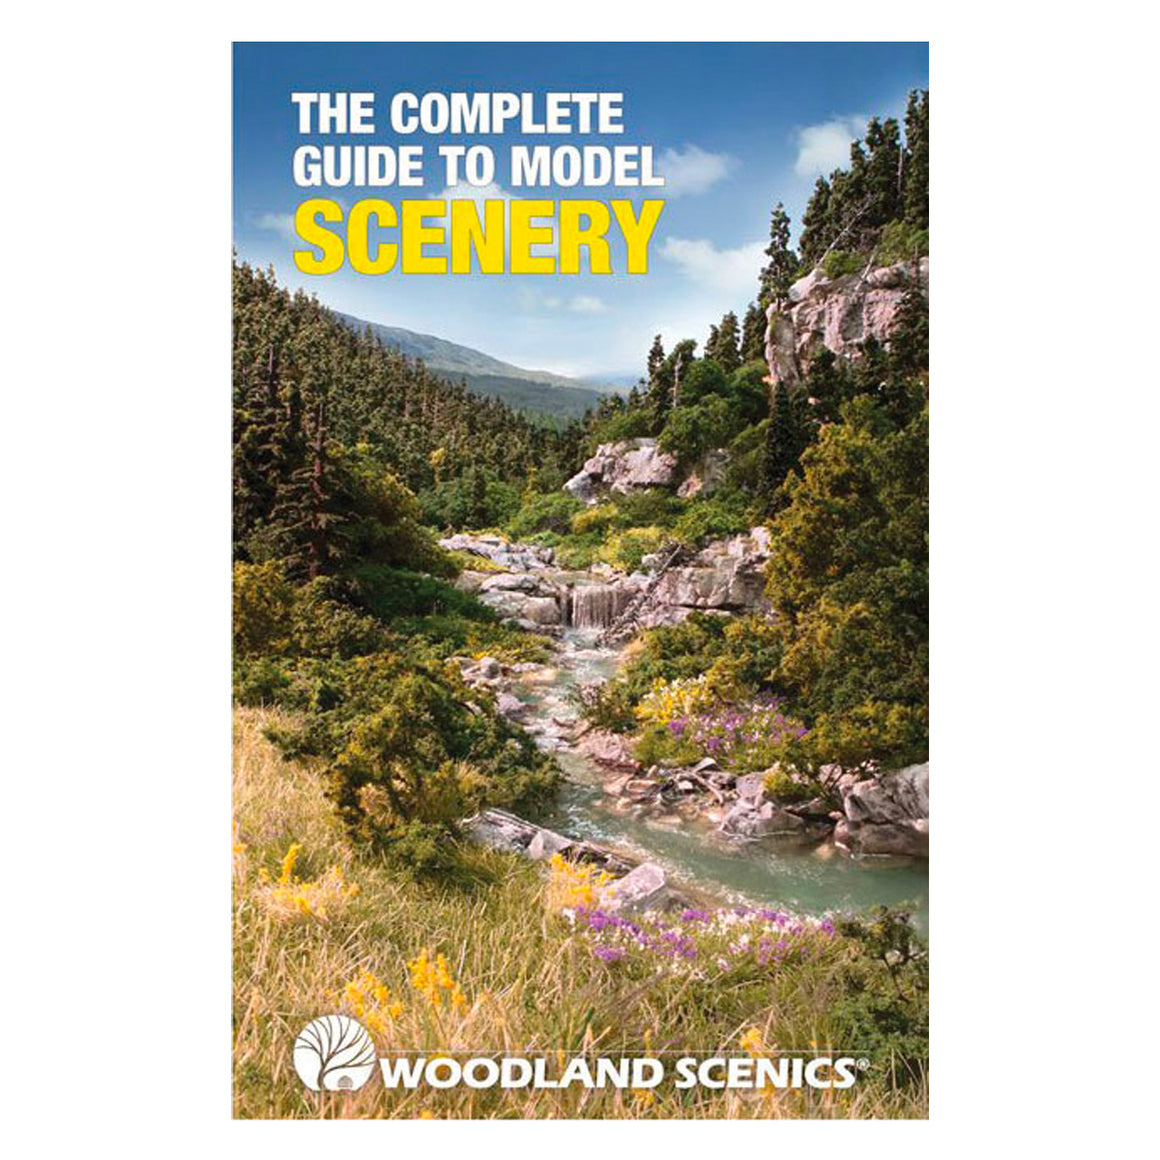 Books: The Complete Guide to Model Scenery